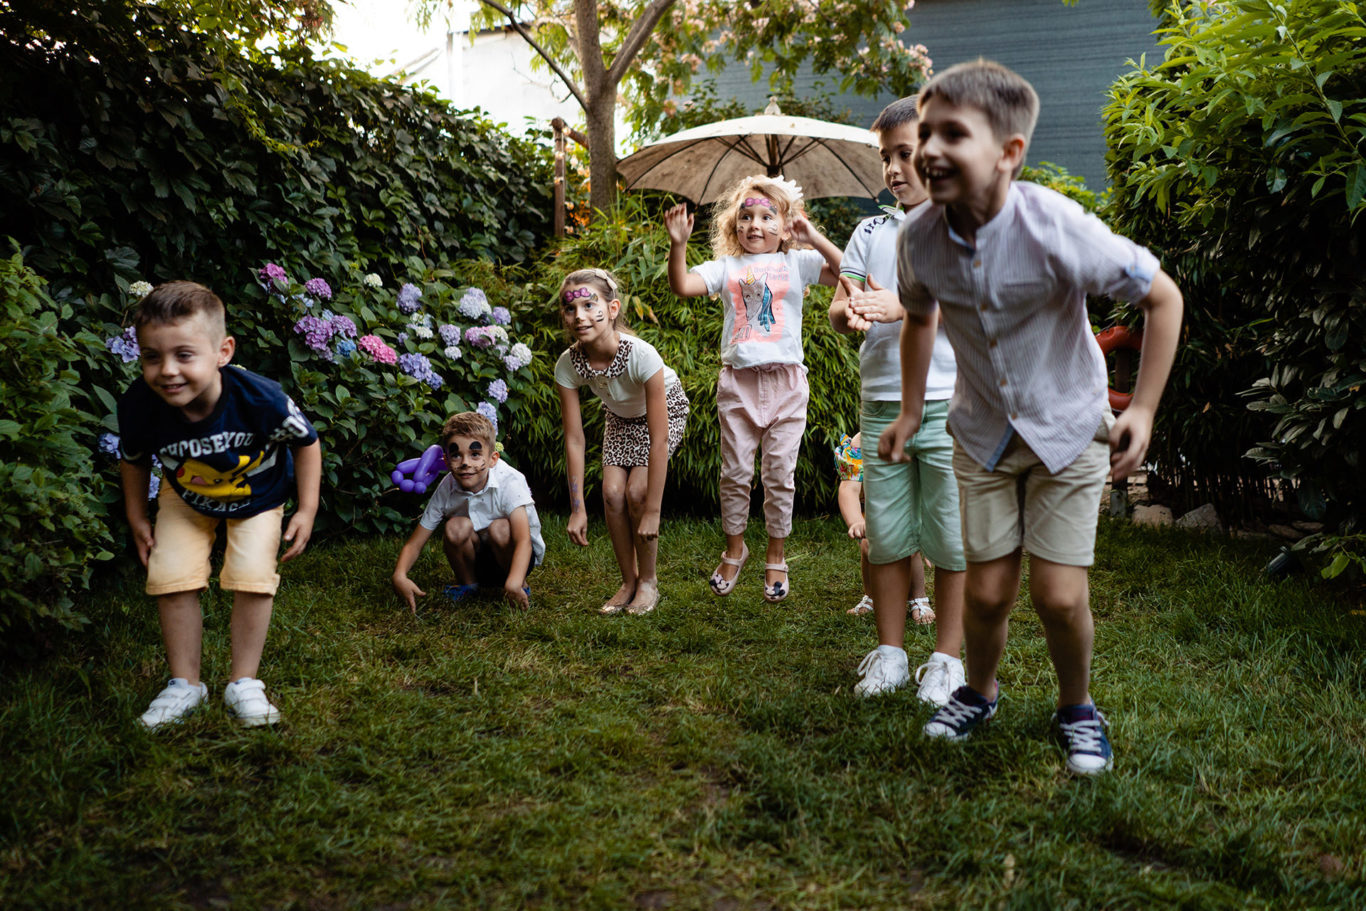 Fun play in the garden at Ochisoru - foto Ciprian Dumitrescu